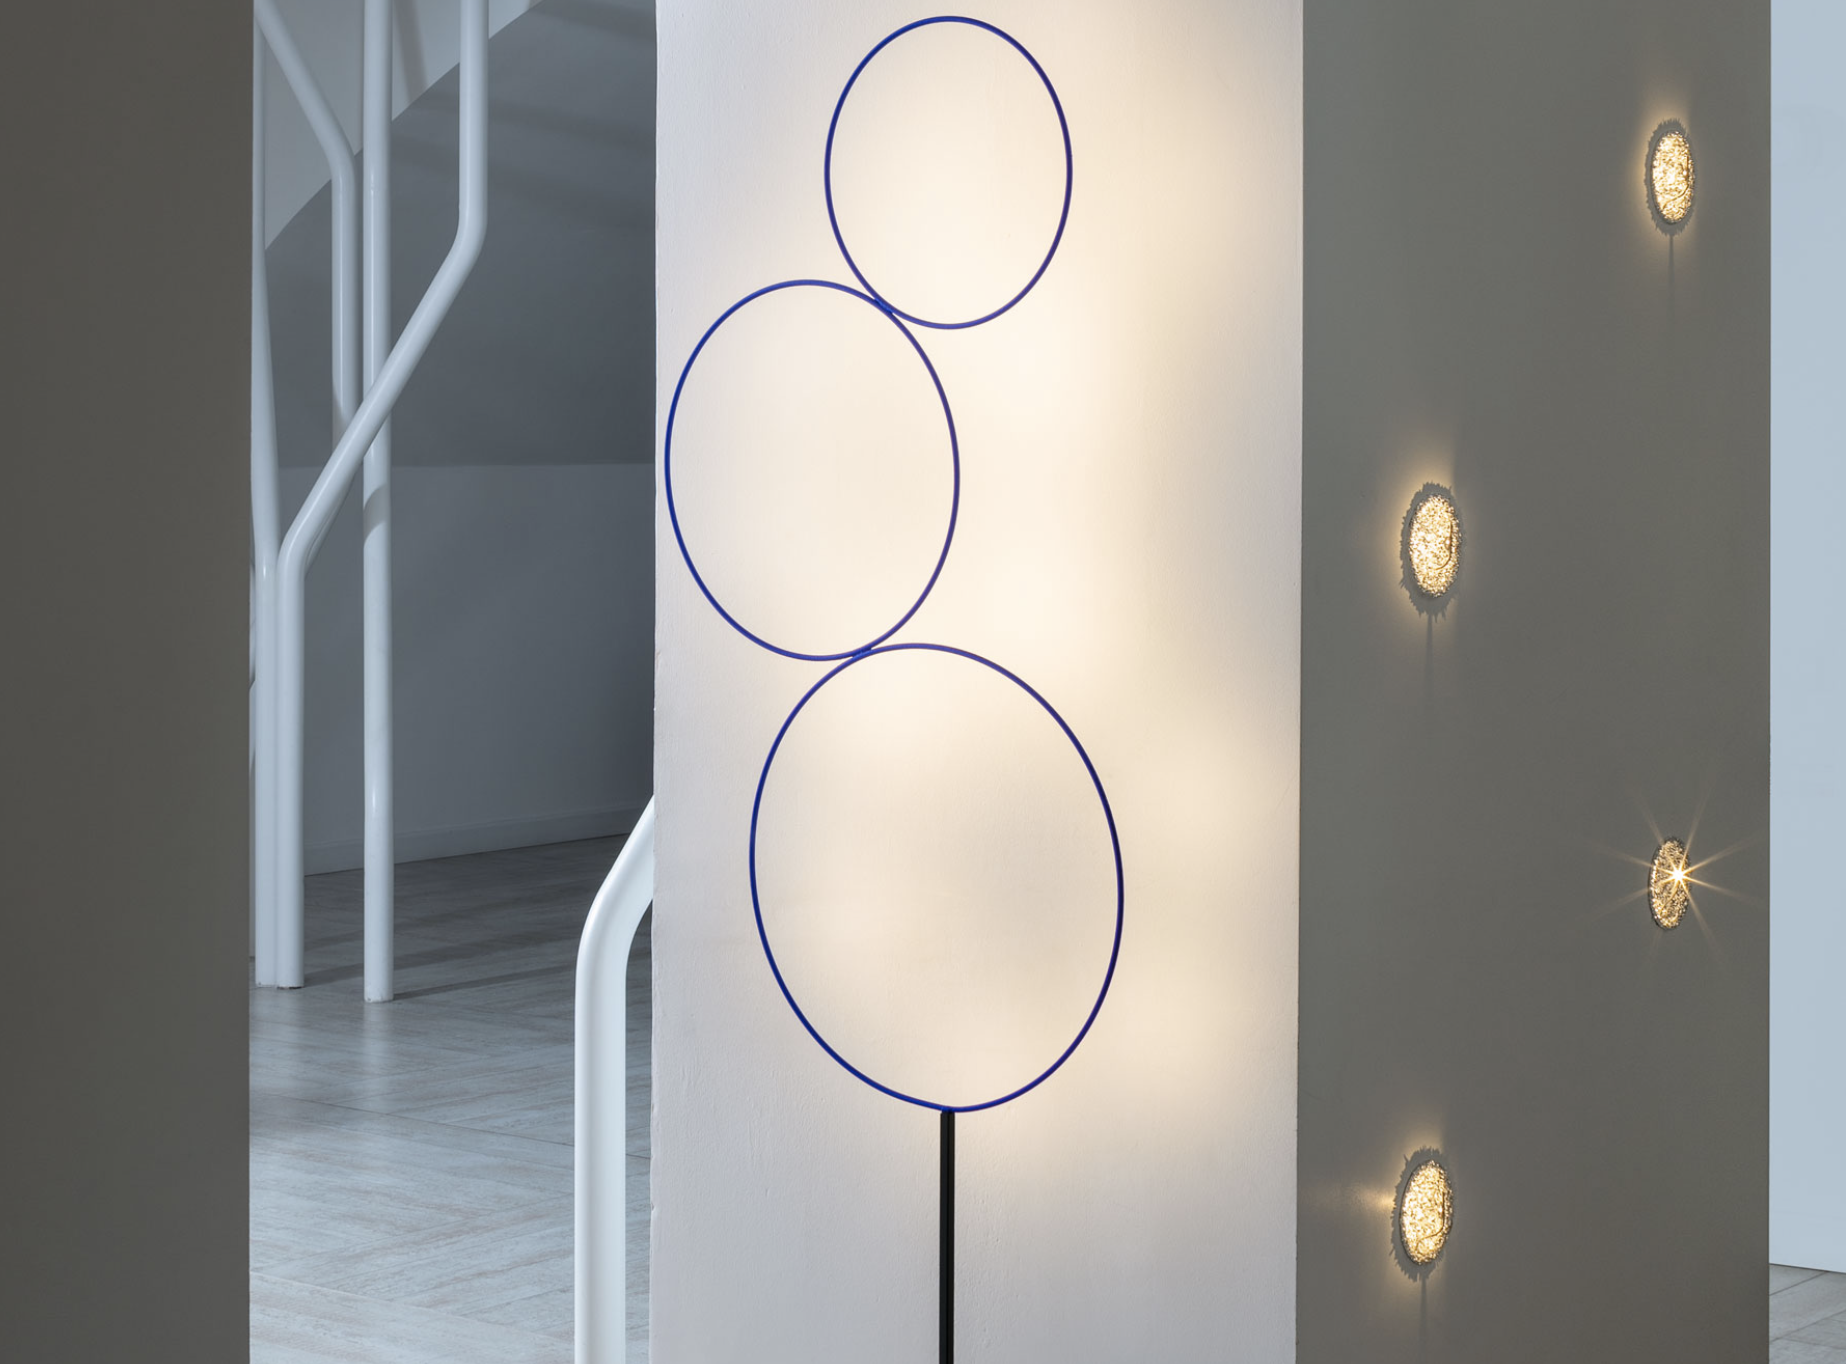 Ametista Recessed Lamp - Oggetti senza Tempo represents Catellani & Smith's more classic spirit. The collection groups together all lamps, past and future, created by Enzo Catellani, for the simple pleasure of bringing life to a gesture more than to a lamp. | Matter of Stuff